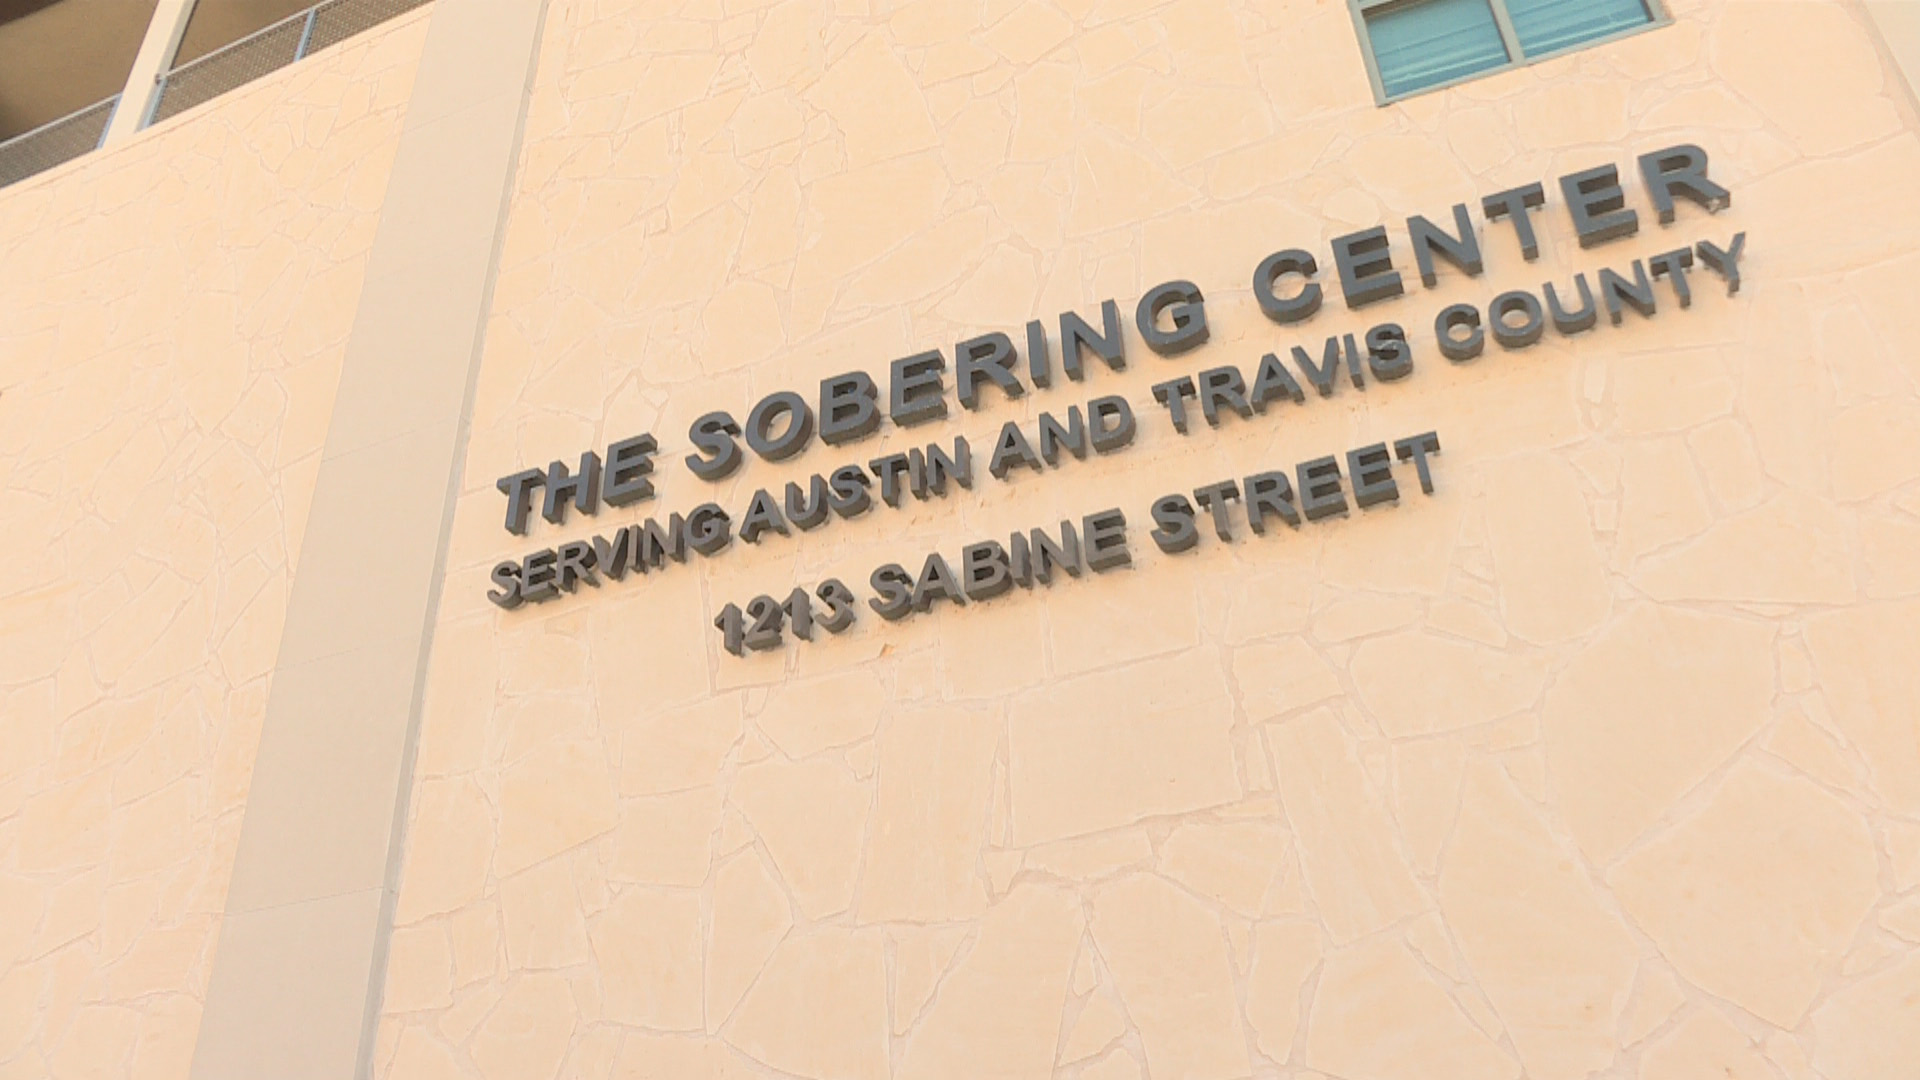 The Sobering Center in Austin